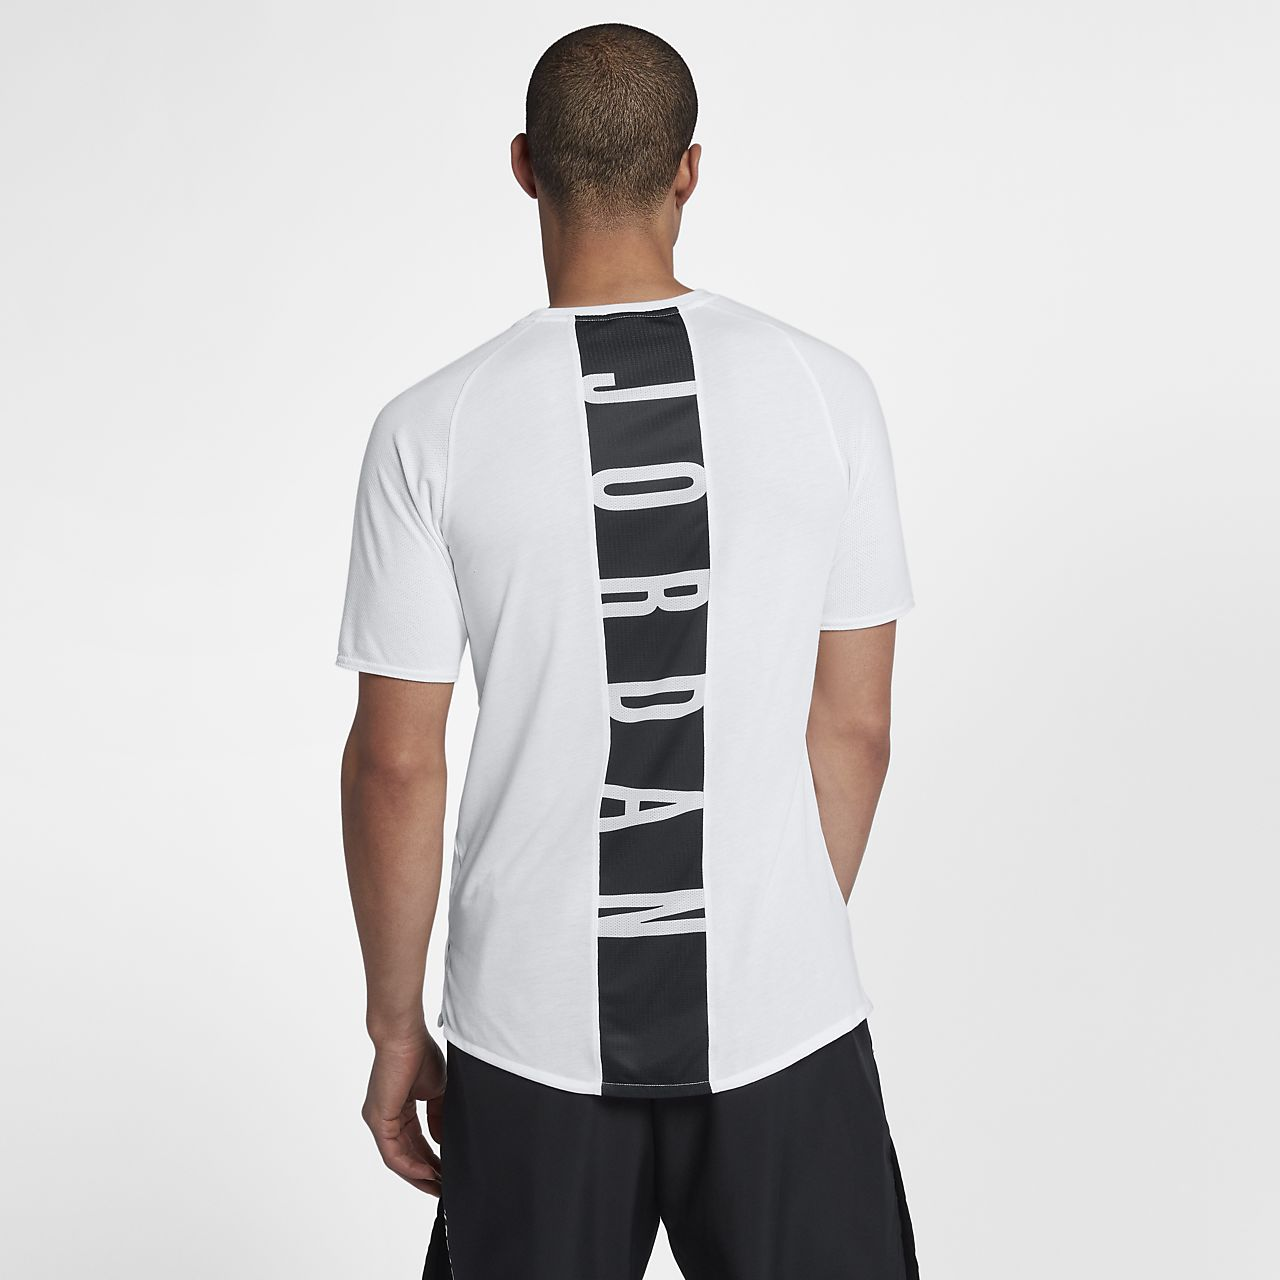 e817e298 Jordan 23 Alpha Men's Short-Sleeve Training Top. Nike.com GB